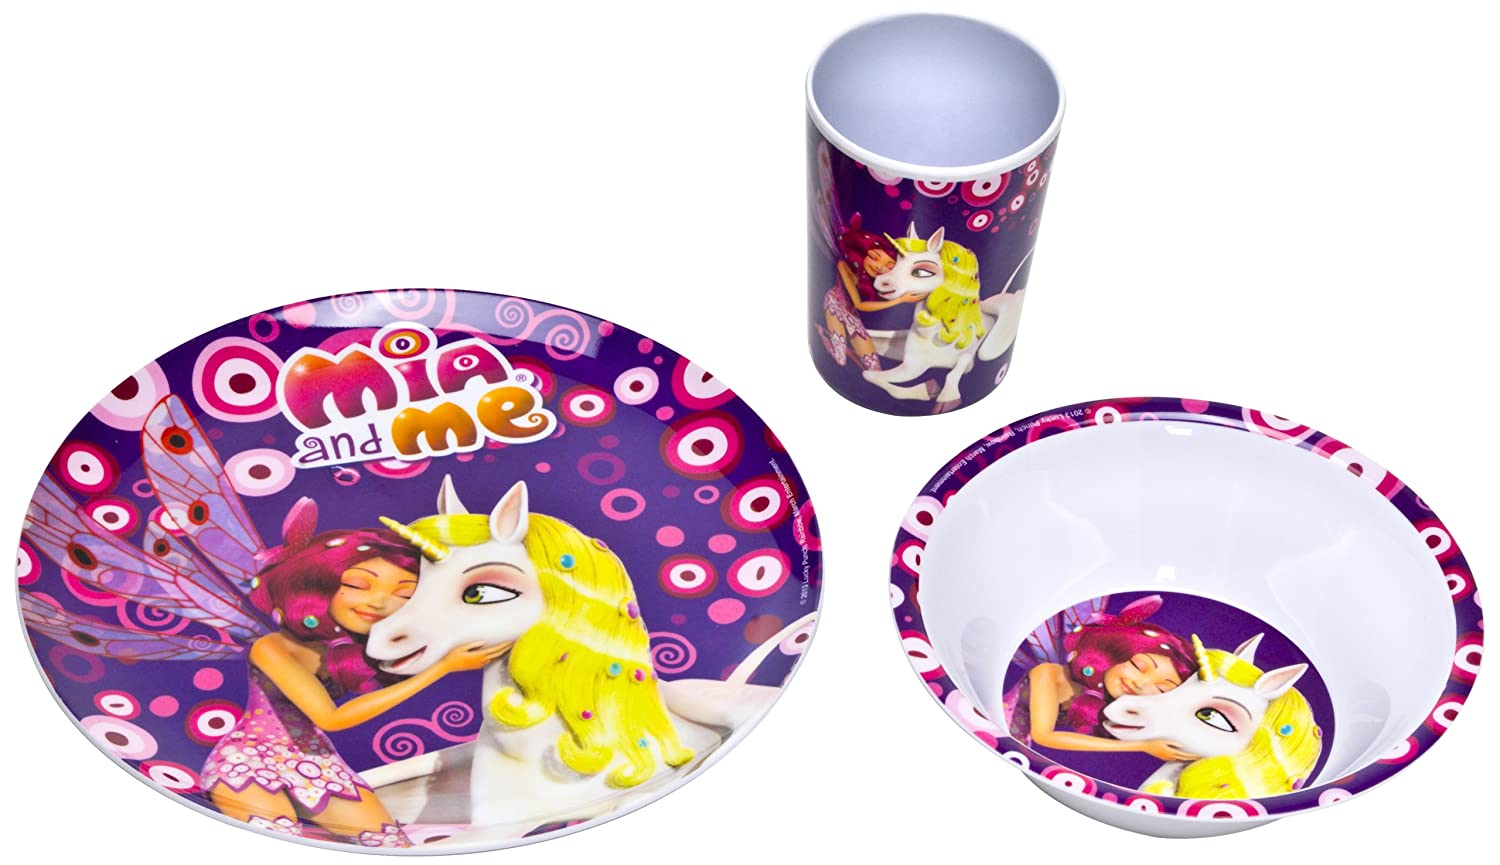 Mia and me - Melamine Dinnerware Set Breakfast (3 pcs) Plate Cup Bowl JoyToy 118062